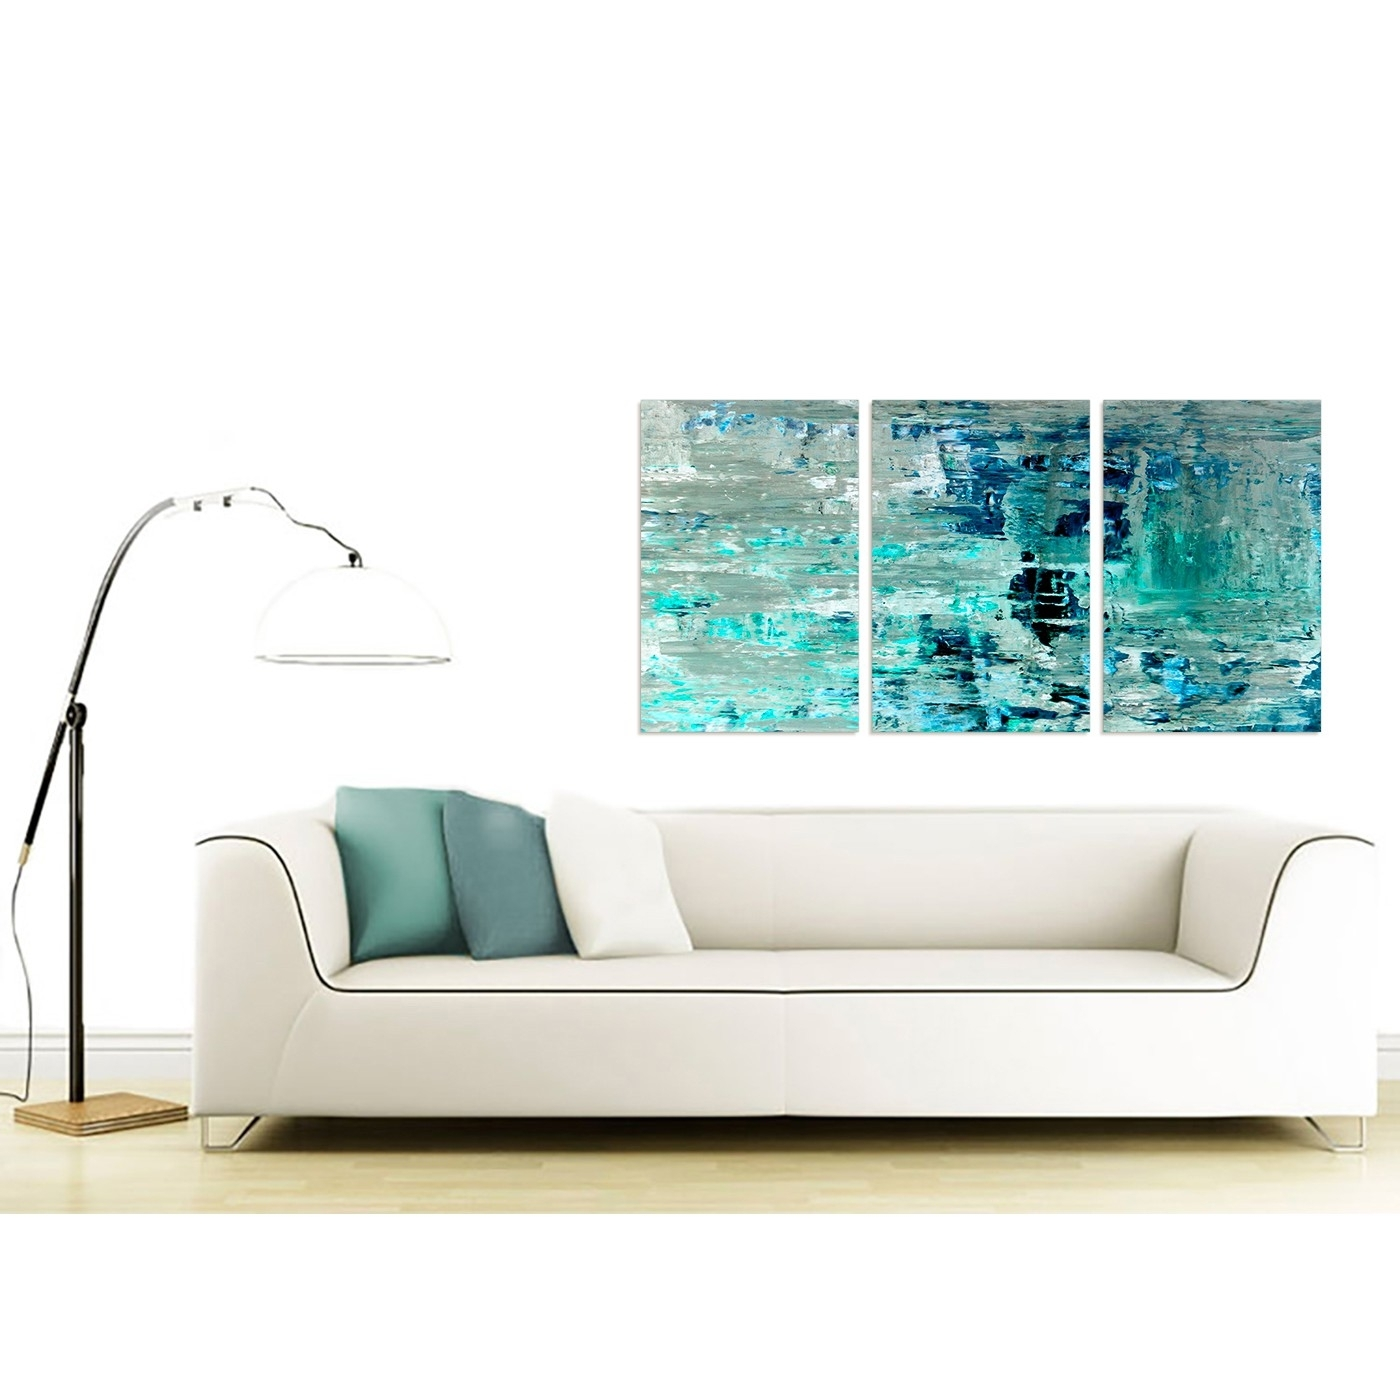 Turquoise Teal Abstract Painting Wall Art Print Canvas – Multi 3 Pertaining To Most Current Living Room Painting Wall Art (View 16 of 20)